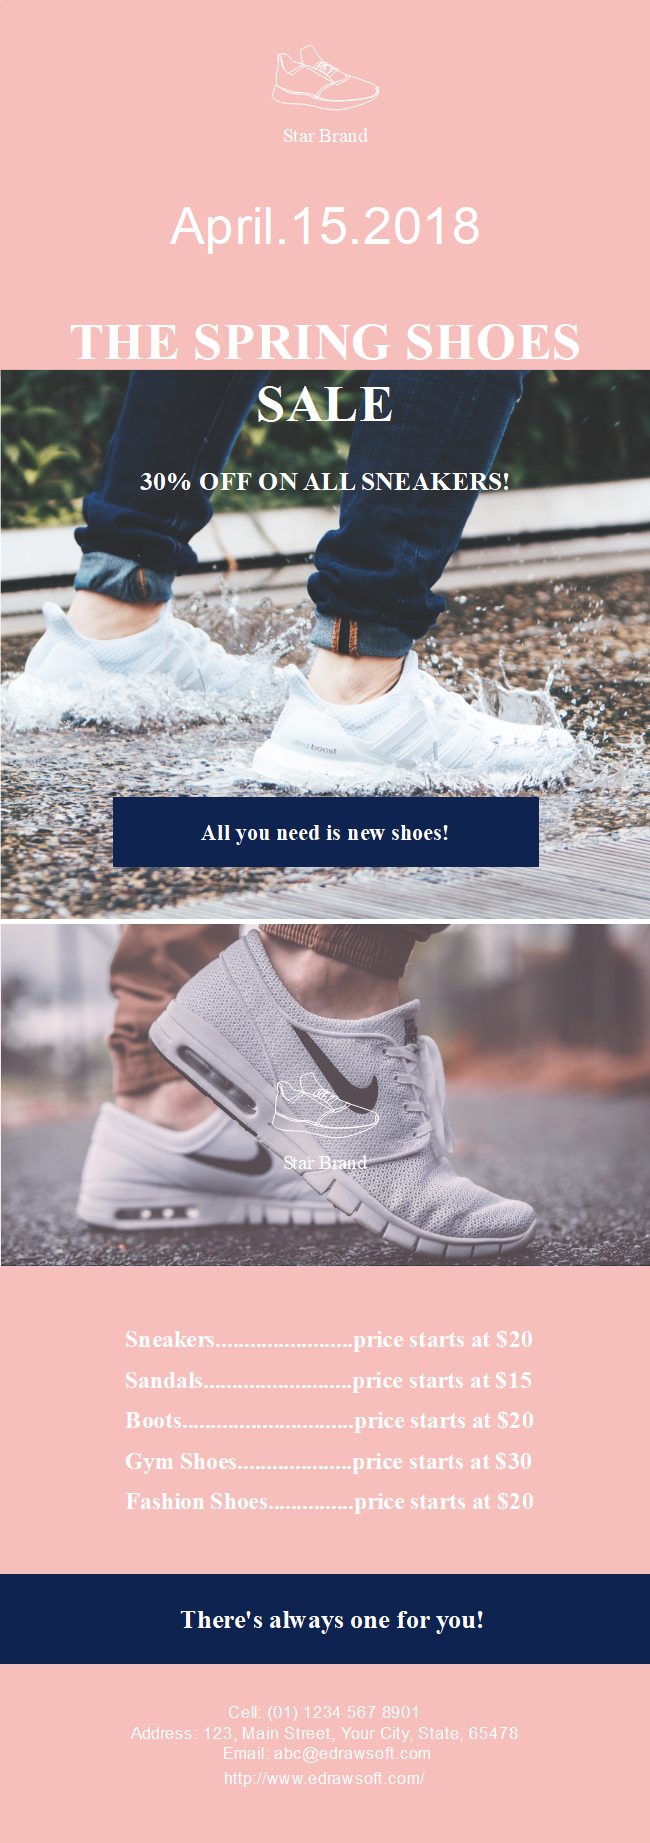 Shoes Sales Flyer